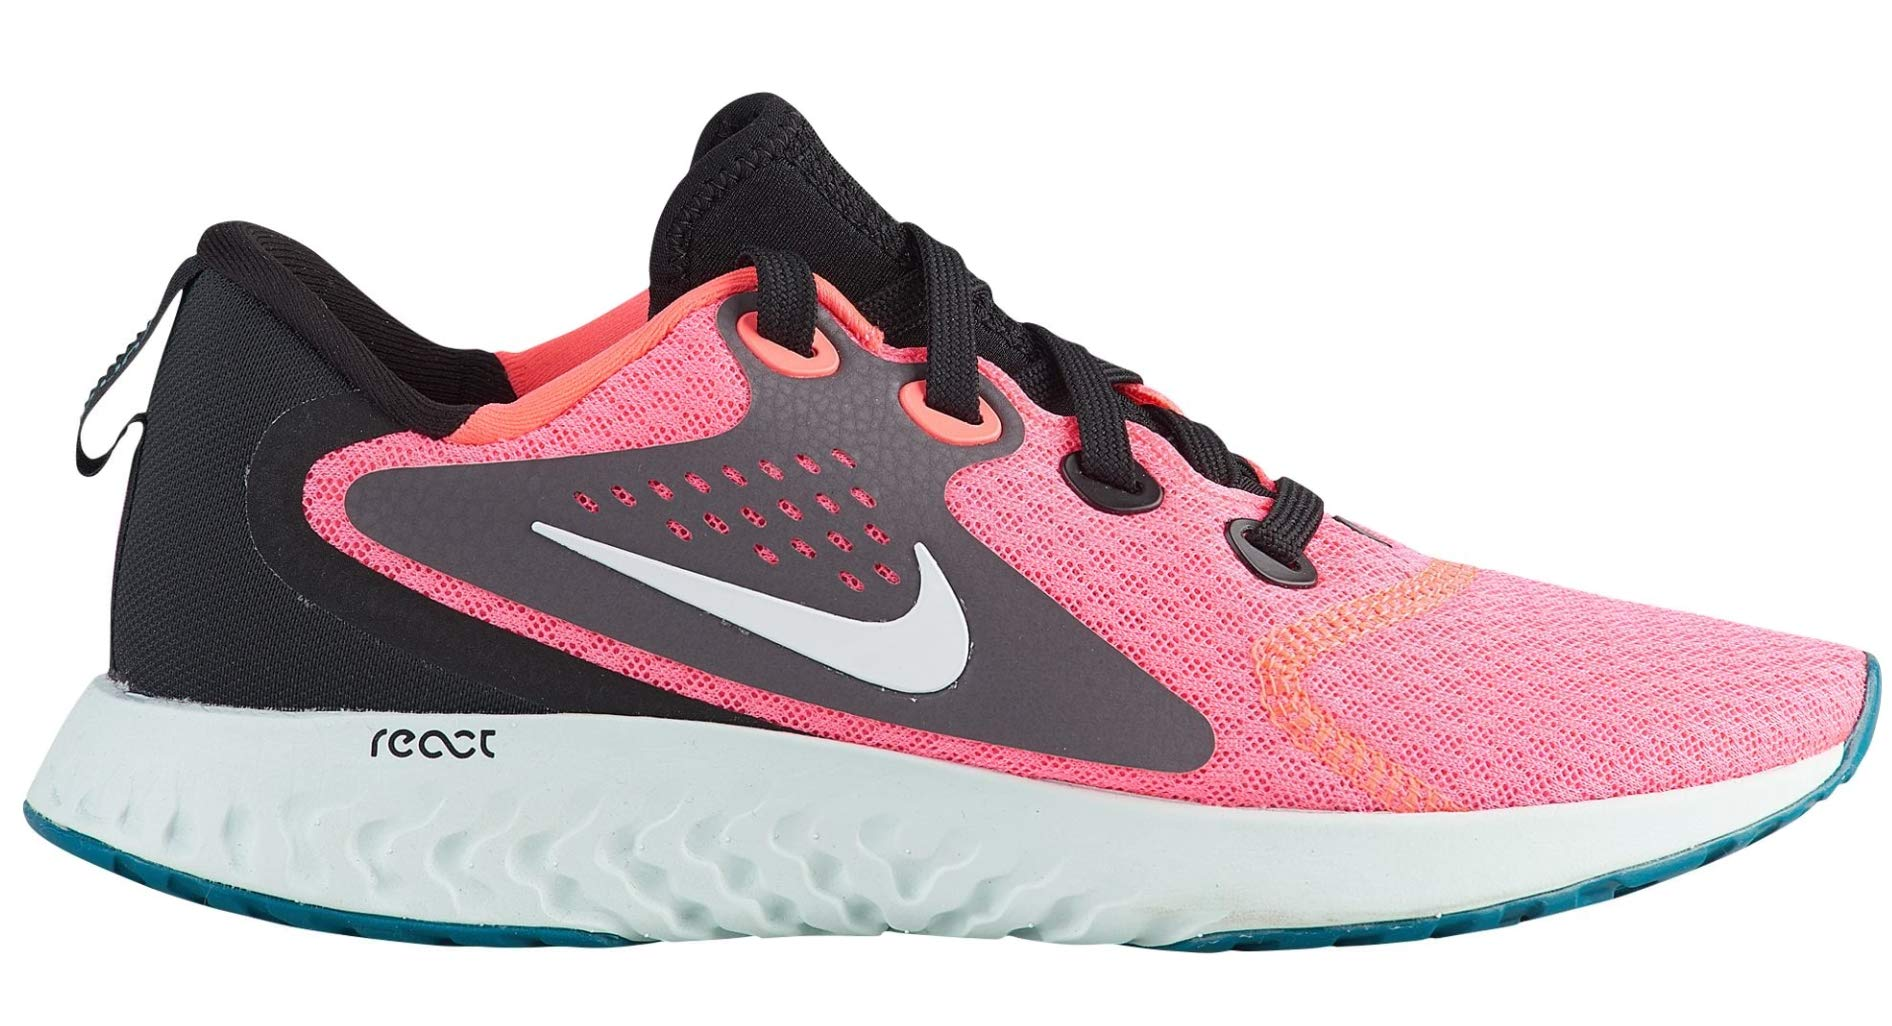 half off 08732 ac8c6 Galleon - Nike Women s WMNS Legend React Low-Top Sneakers, Multicolour (Hot  Punch White Black Thunder Grey 001), 8.5 UK